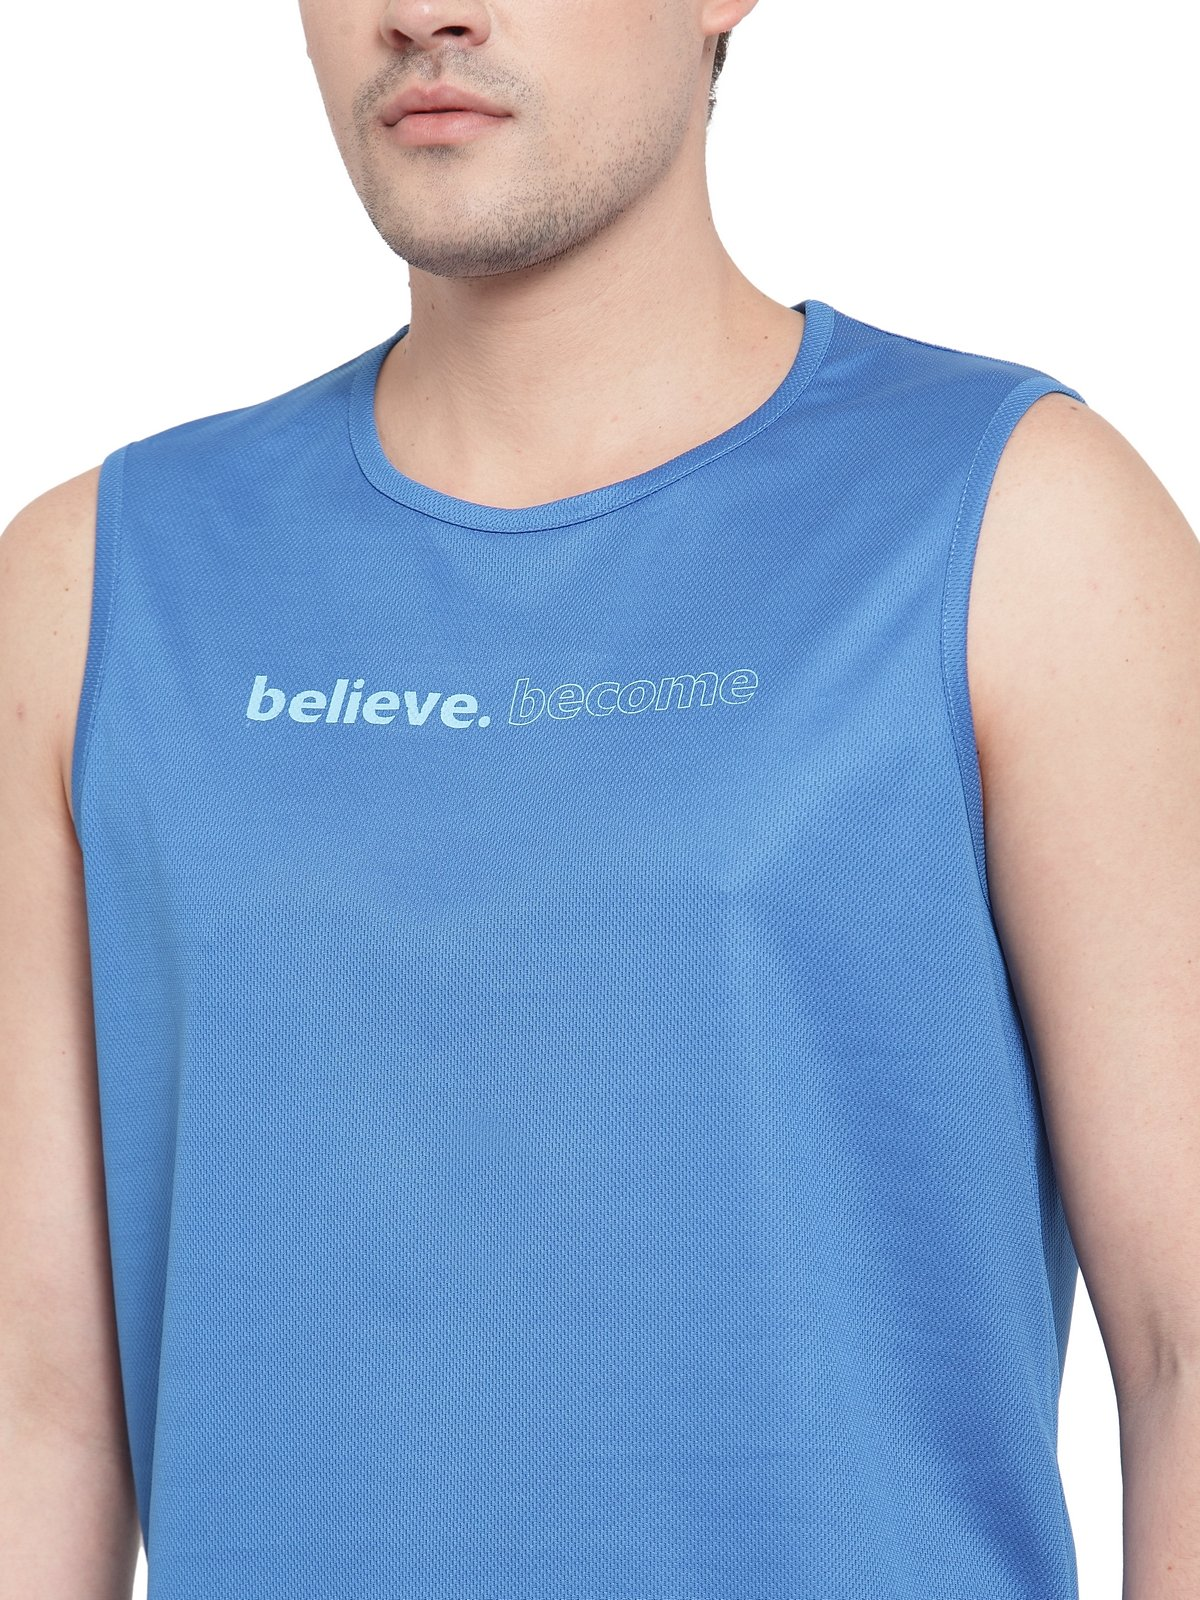 Believe Become